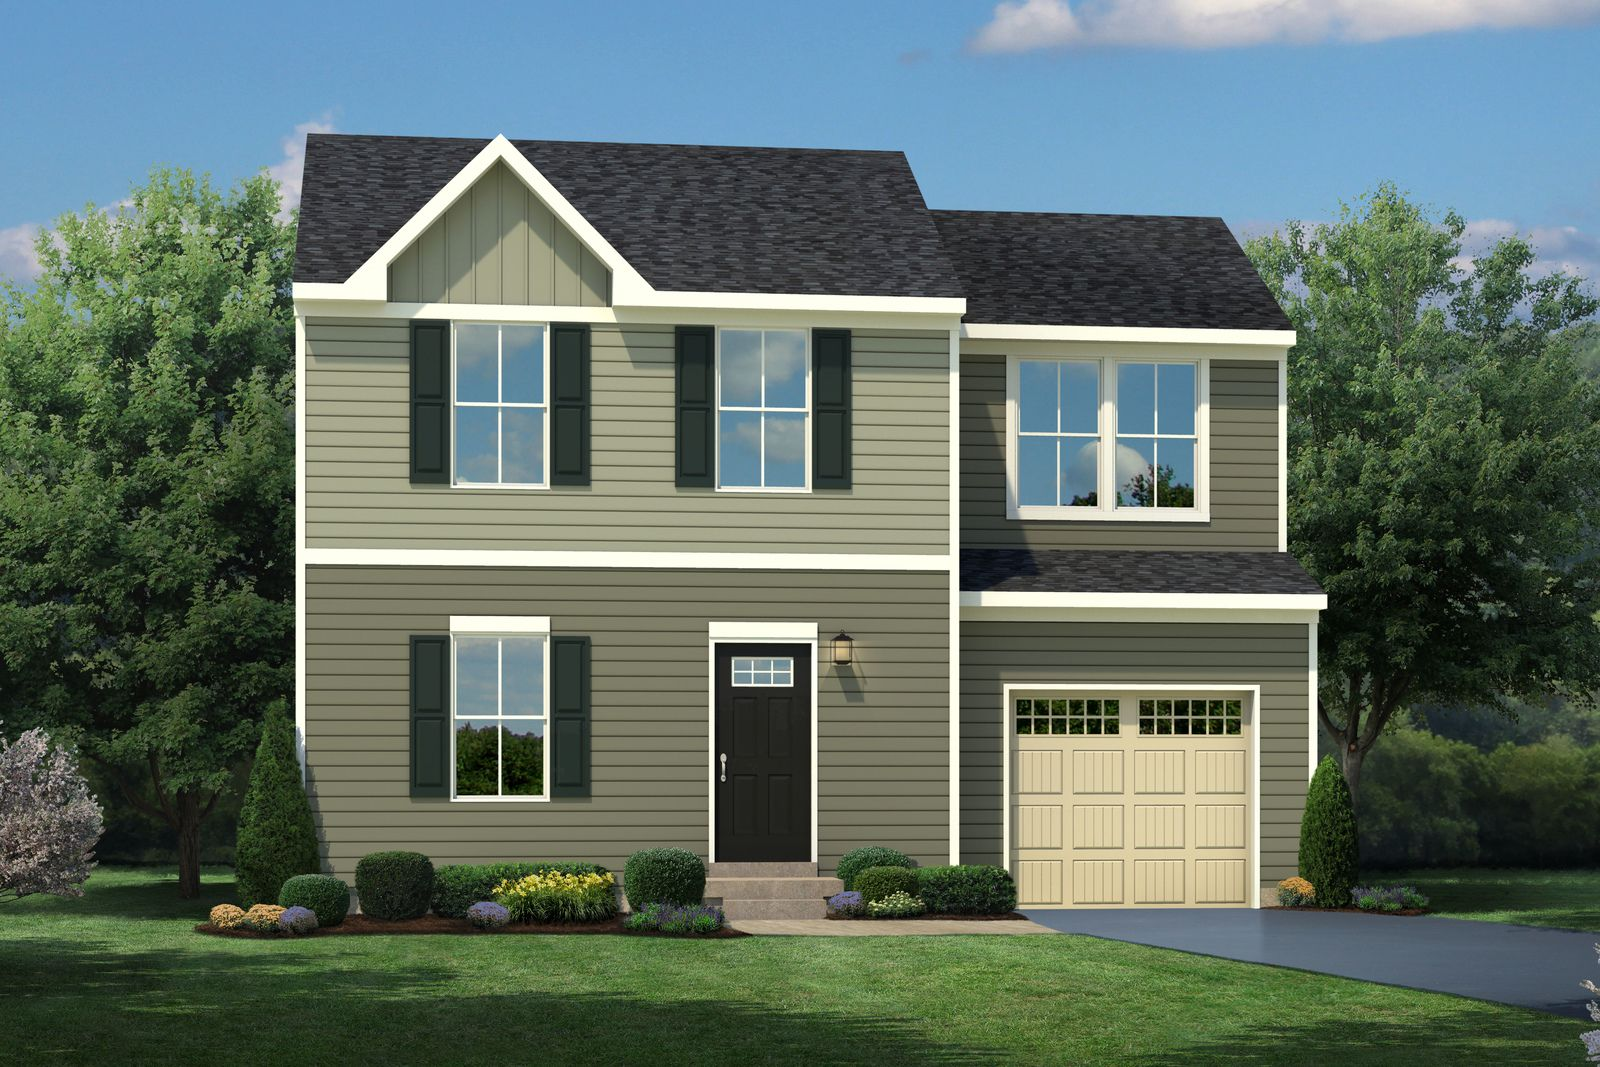 Single Family for Sale at Artists Walk - Plan 1280 2 Galleria Drive Mays Landing, New Jersey 08330 United States